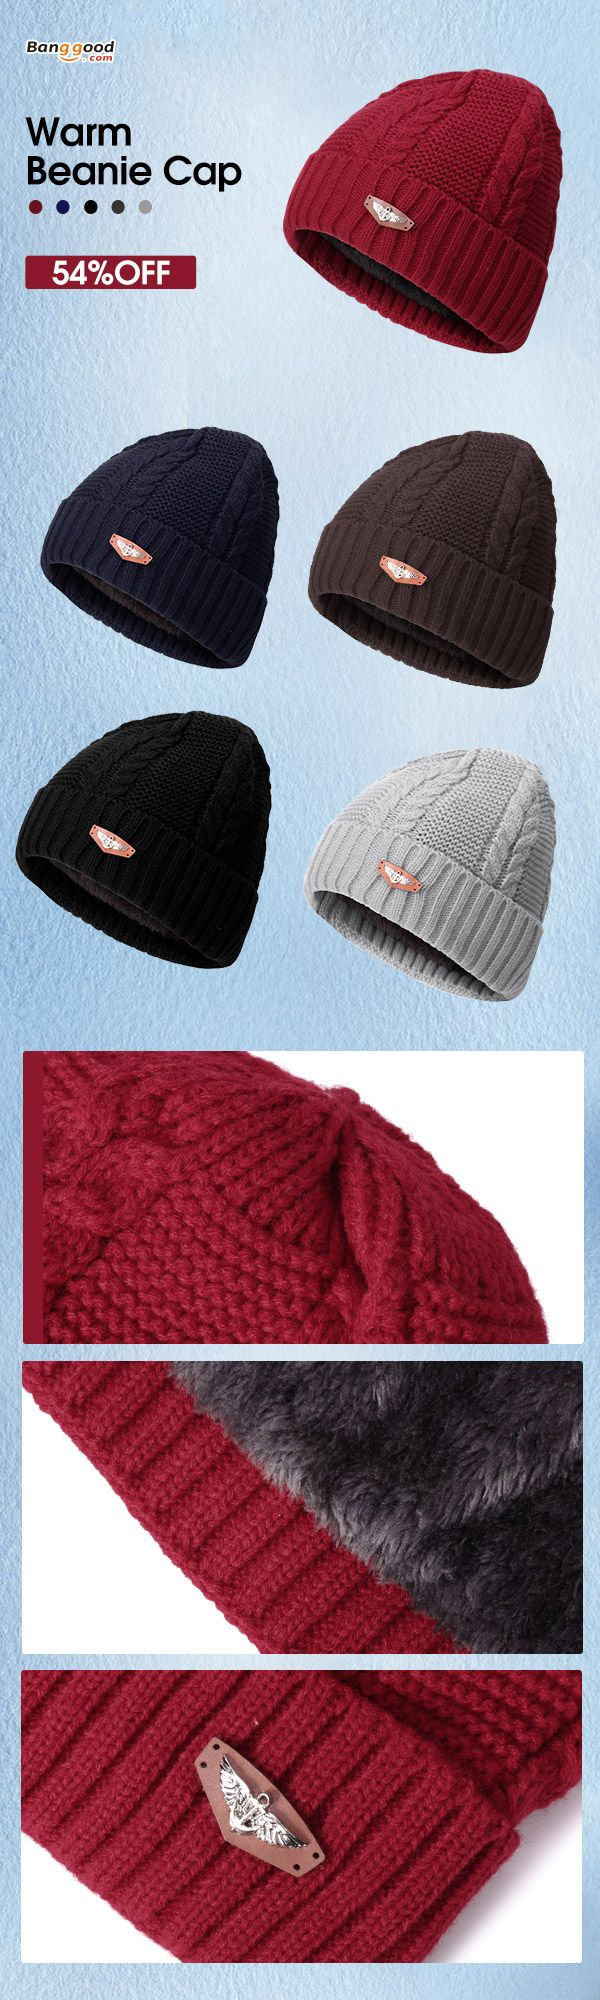 54%OFF&Free shipping. Men Cap,  Knitted Hat, Beanie Cap, Outdoor Hats, Warm&Fashion. Color: Black, Navy, Grey, Wine Red. Shop now~